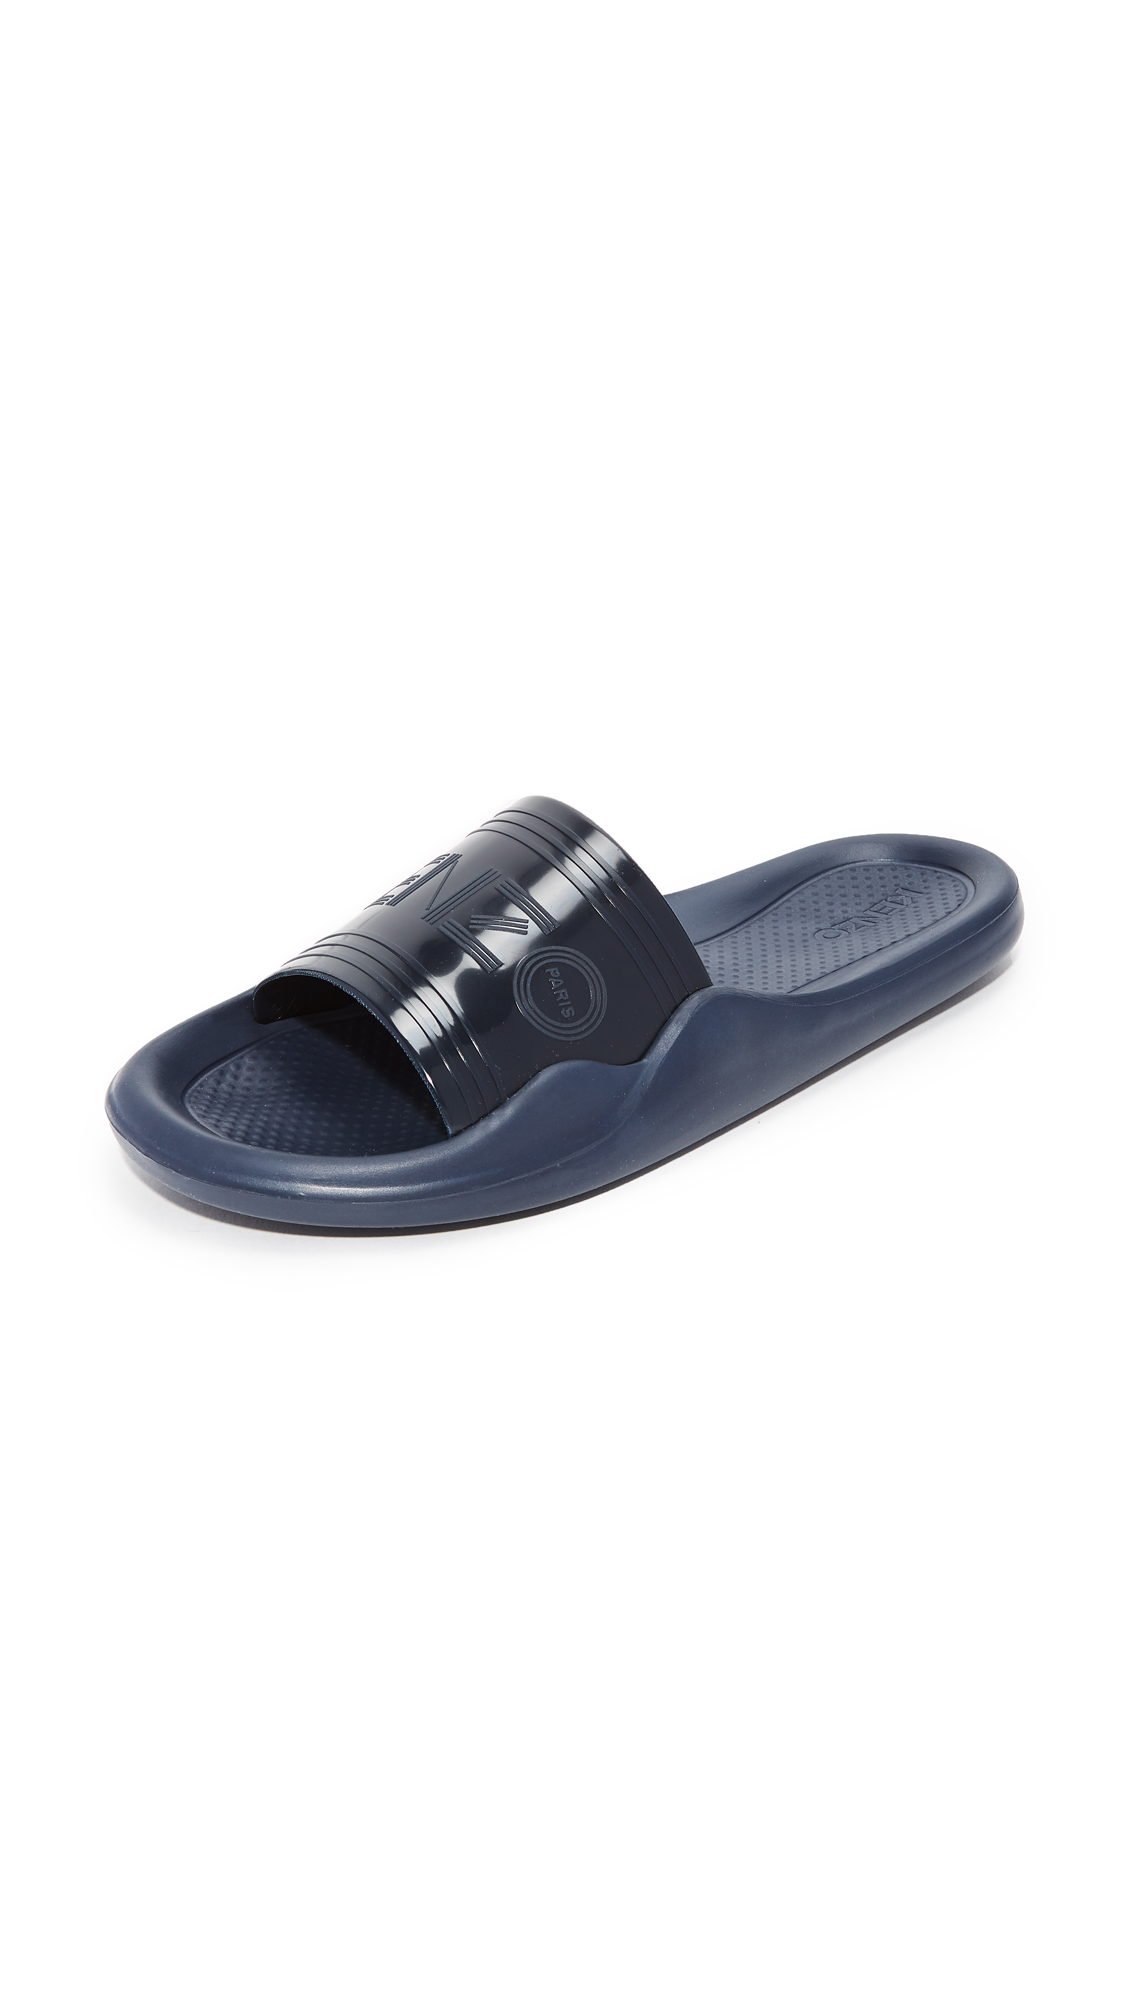 KENZO Pool Slide Sandals - Navy Blue